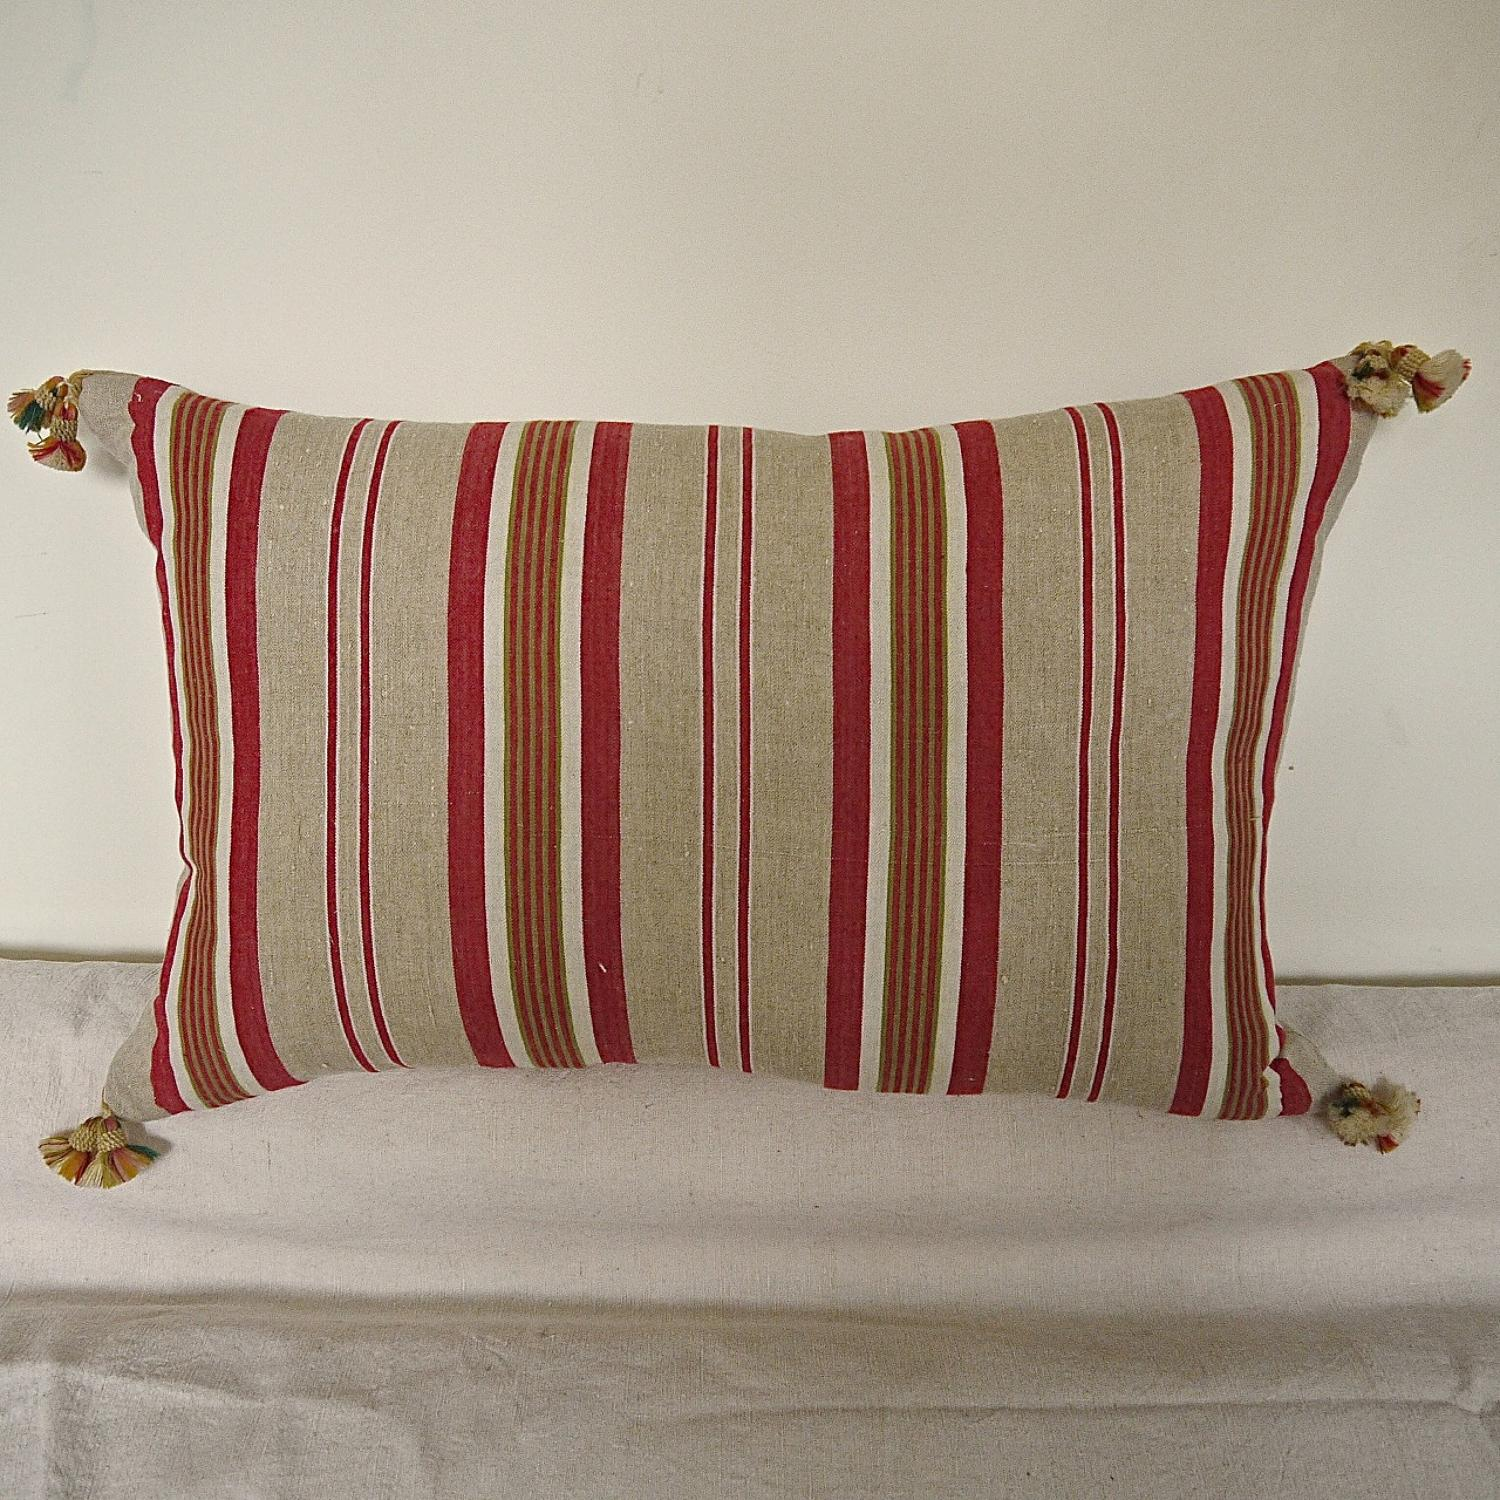 C1900s French Striped Linen Ticking Cushion In Cushions